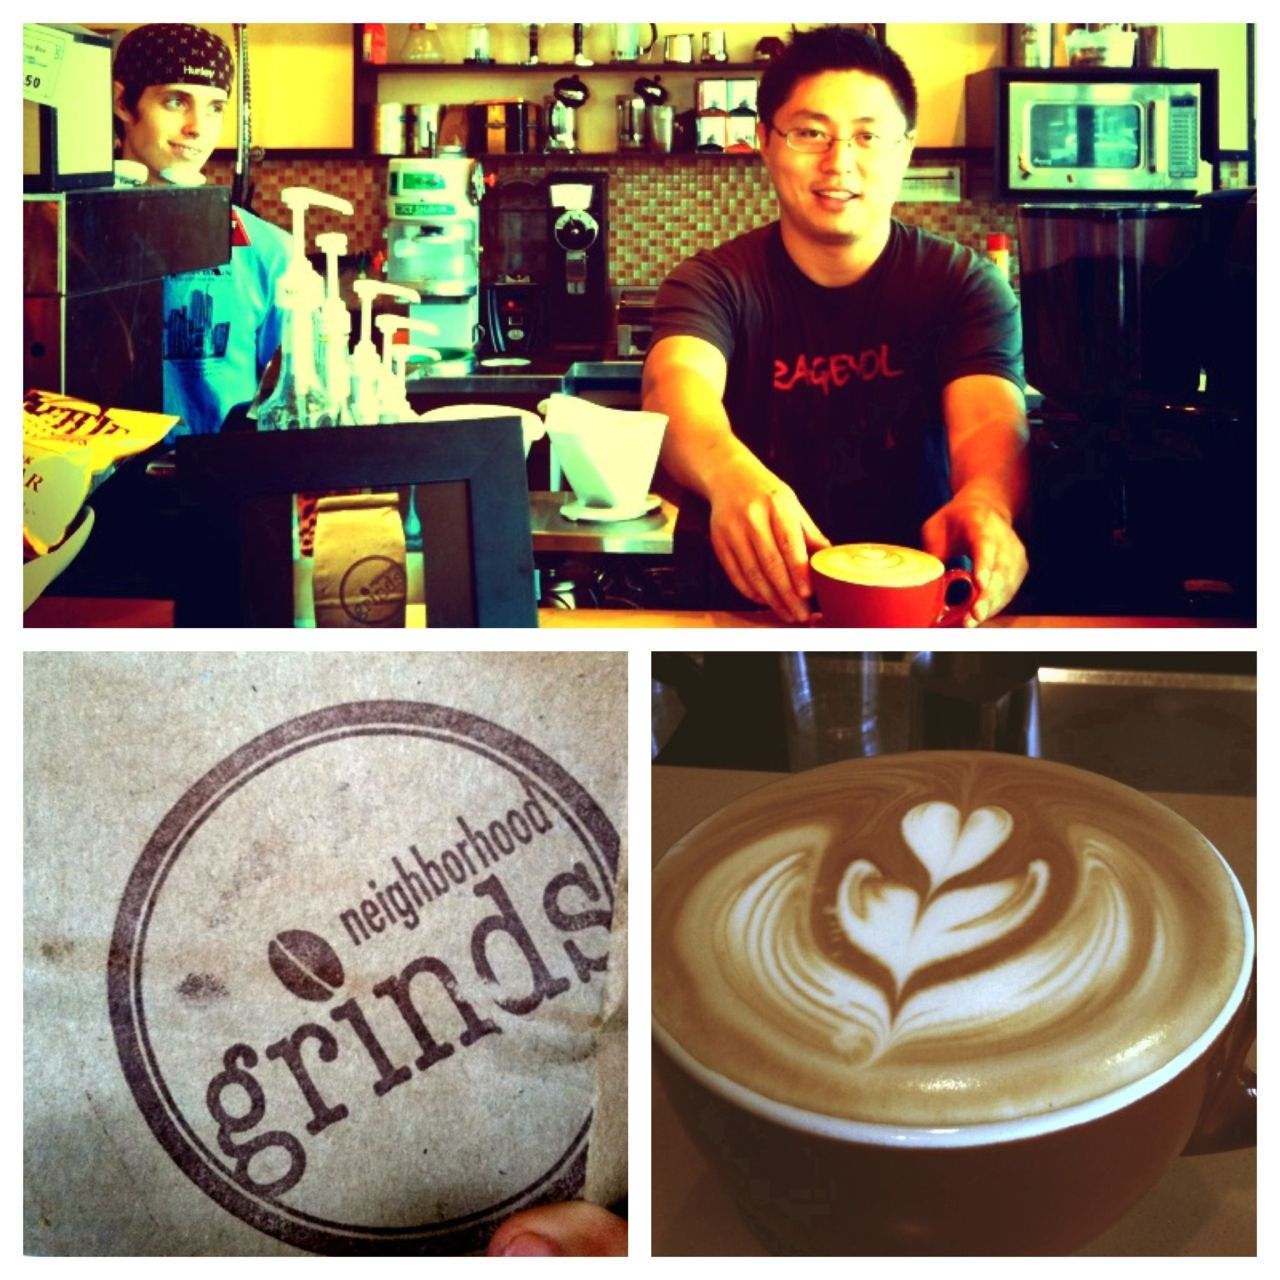 Neighborhood Grinds   Got some good freshly roasted coffee today from Phil. Check out his cafe at: 2315 Artesia Blvd Unit 1  Redondo Beach, CA 90278   I love good coffee.  And much respect to business owners during these hard economic times in America. Go for it guys!